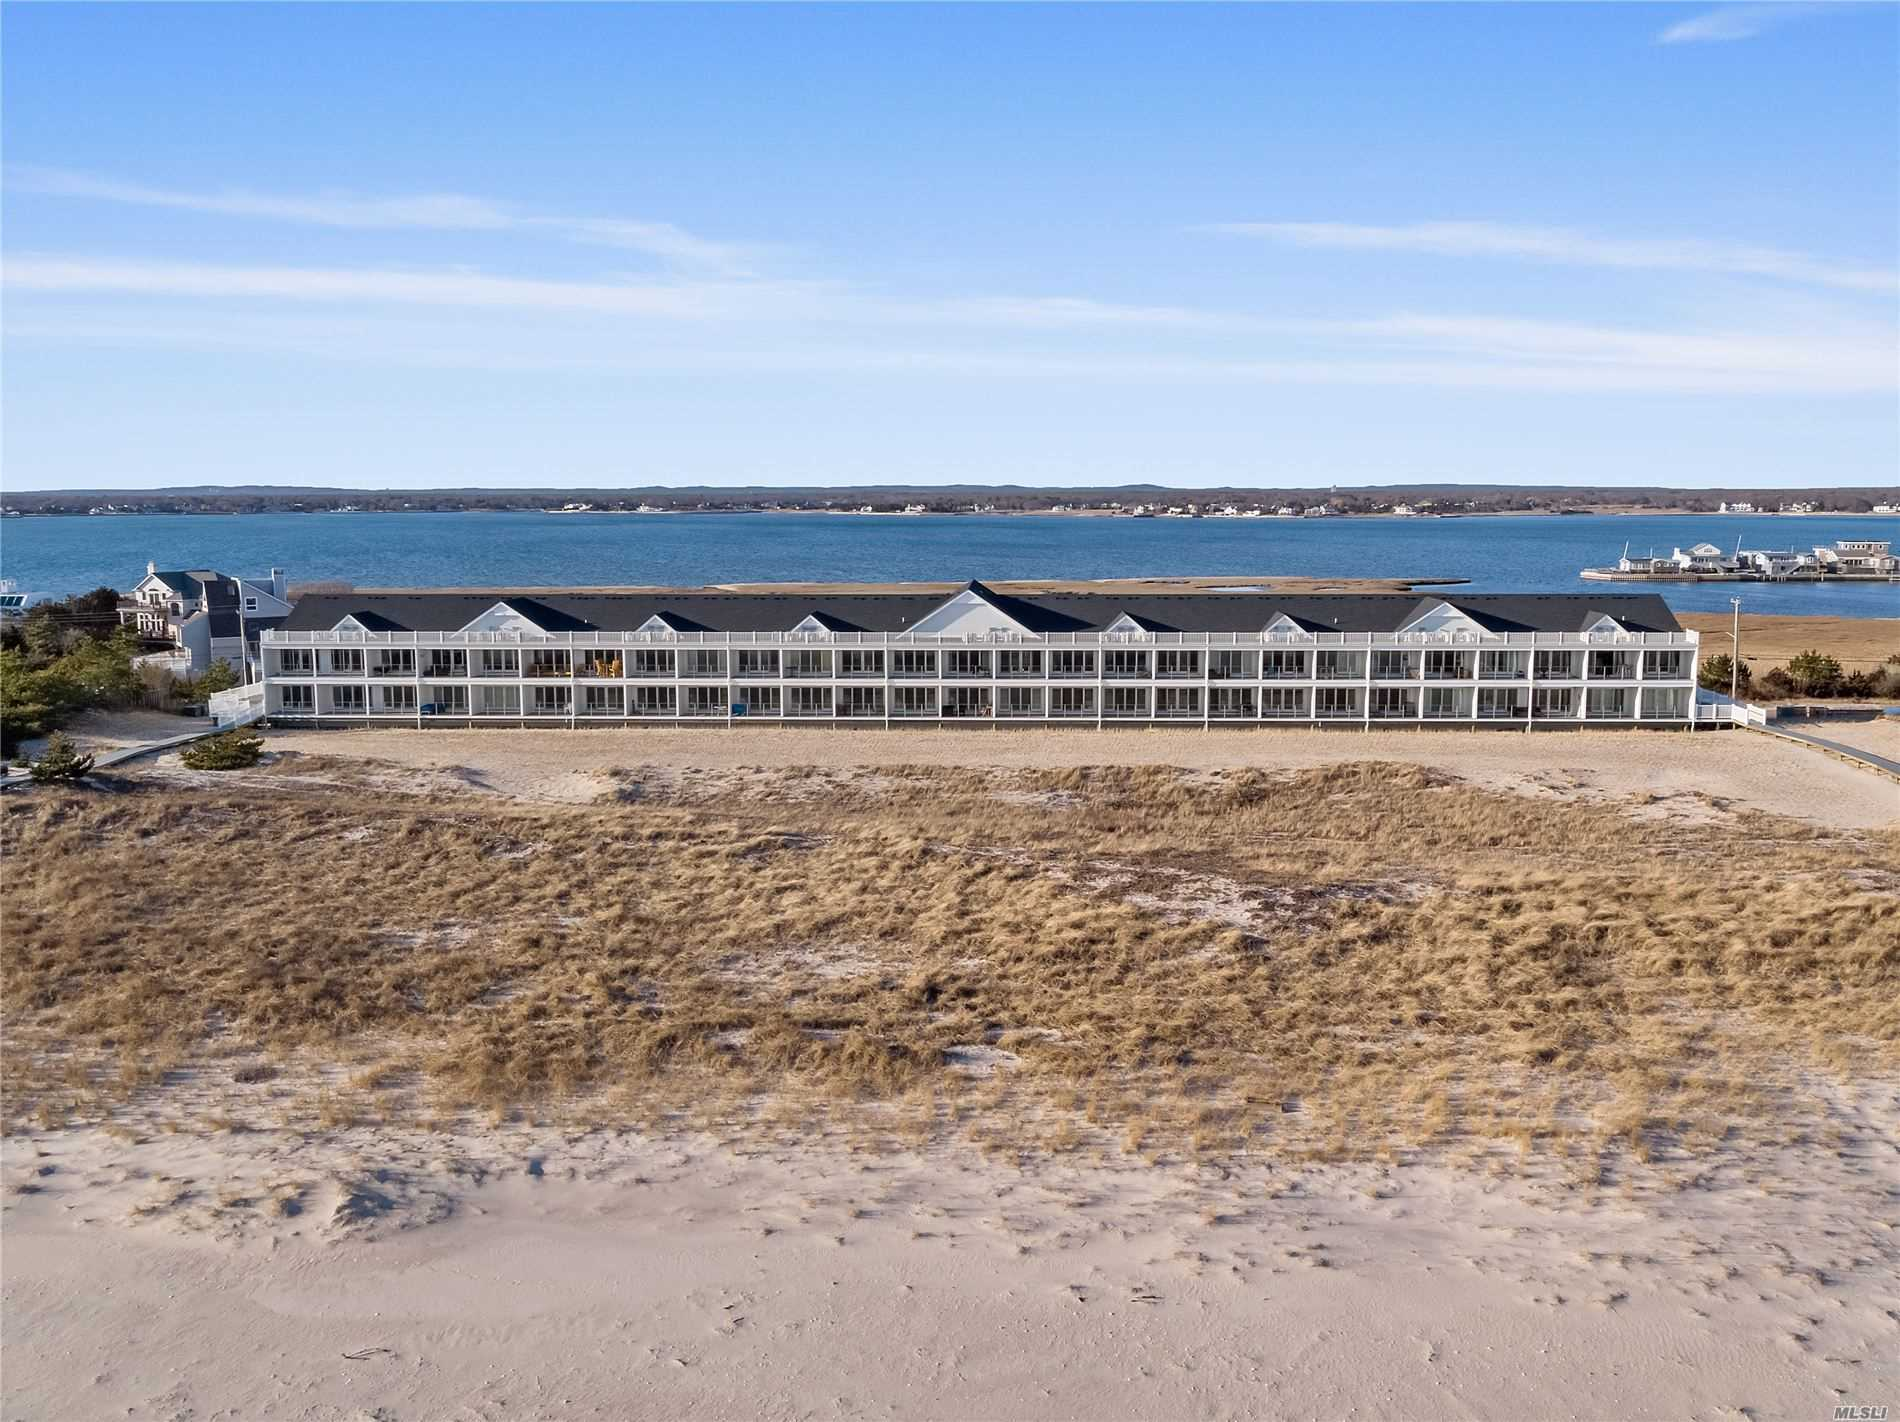 Property for sale at 473 Dune Rd, Westhampton Bch,  New York 11978